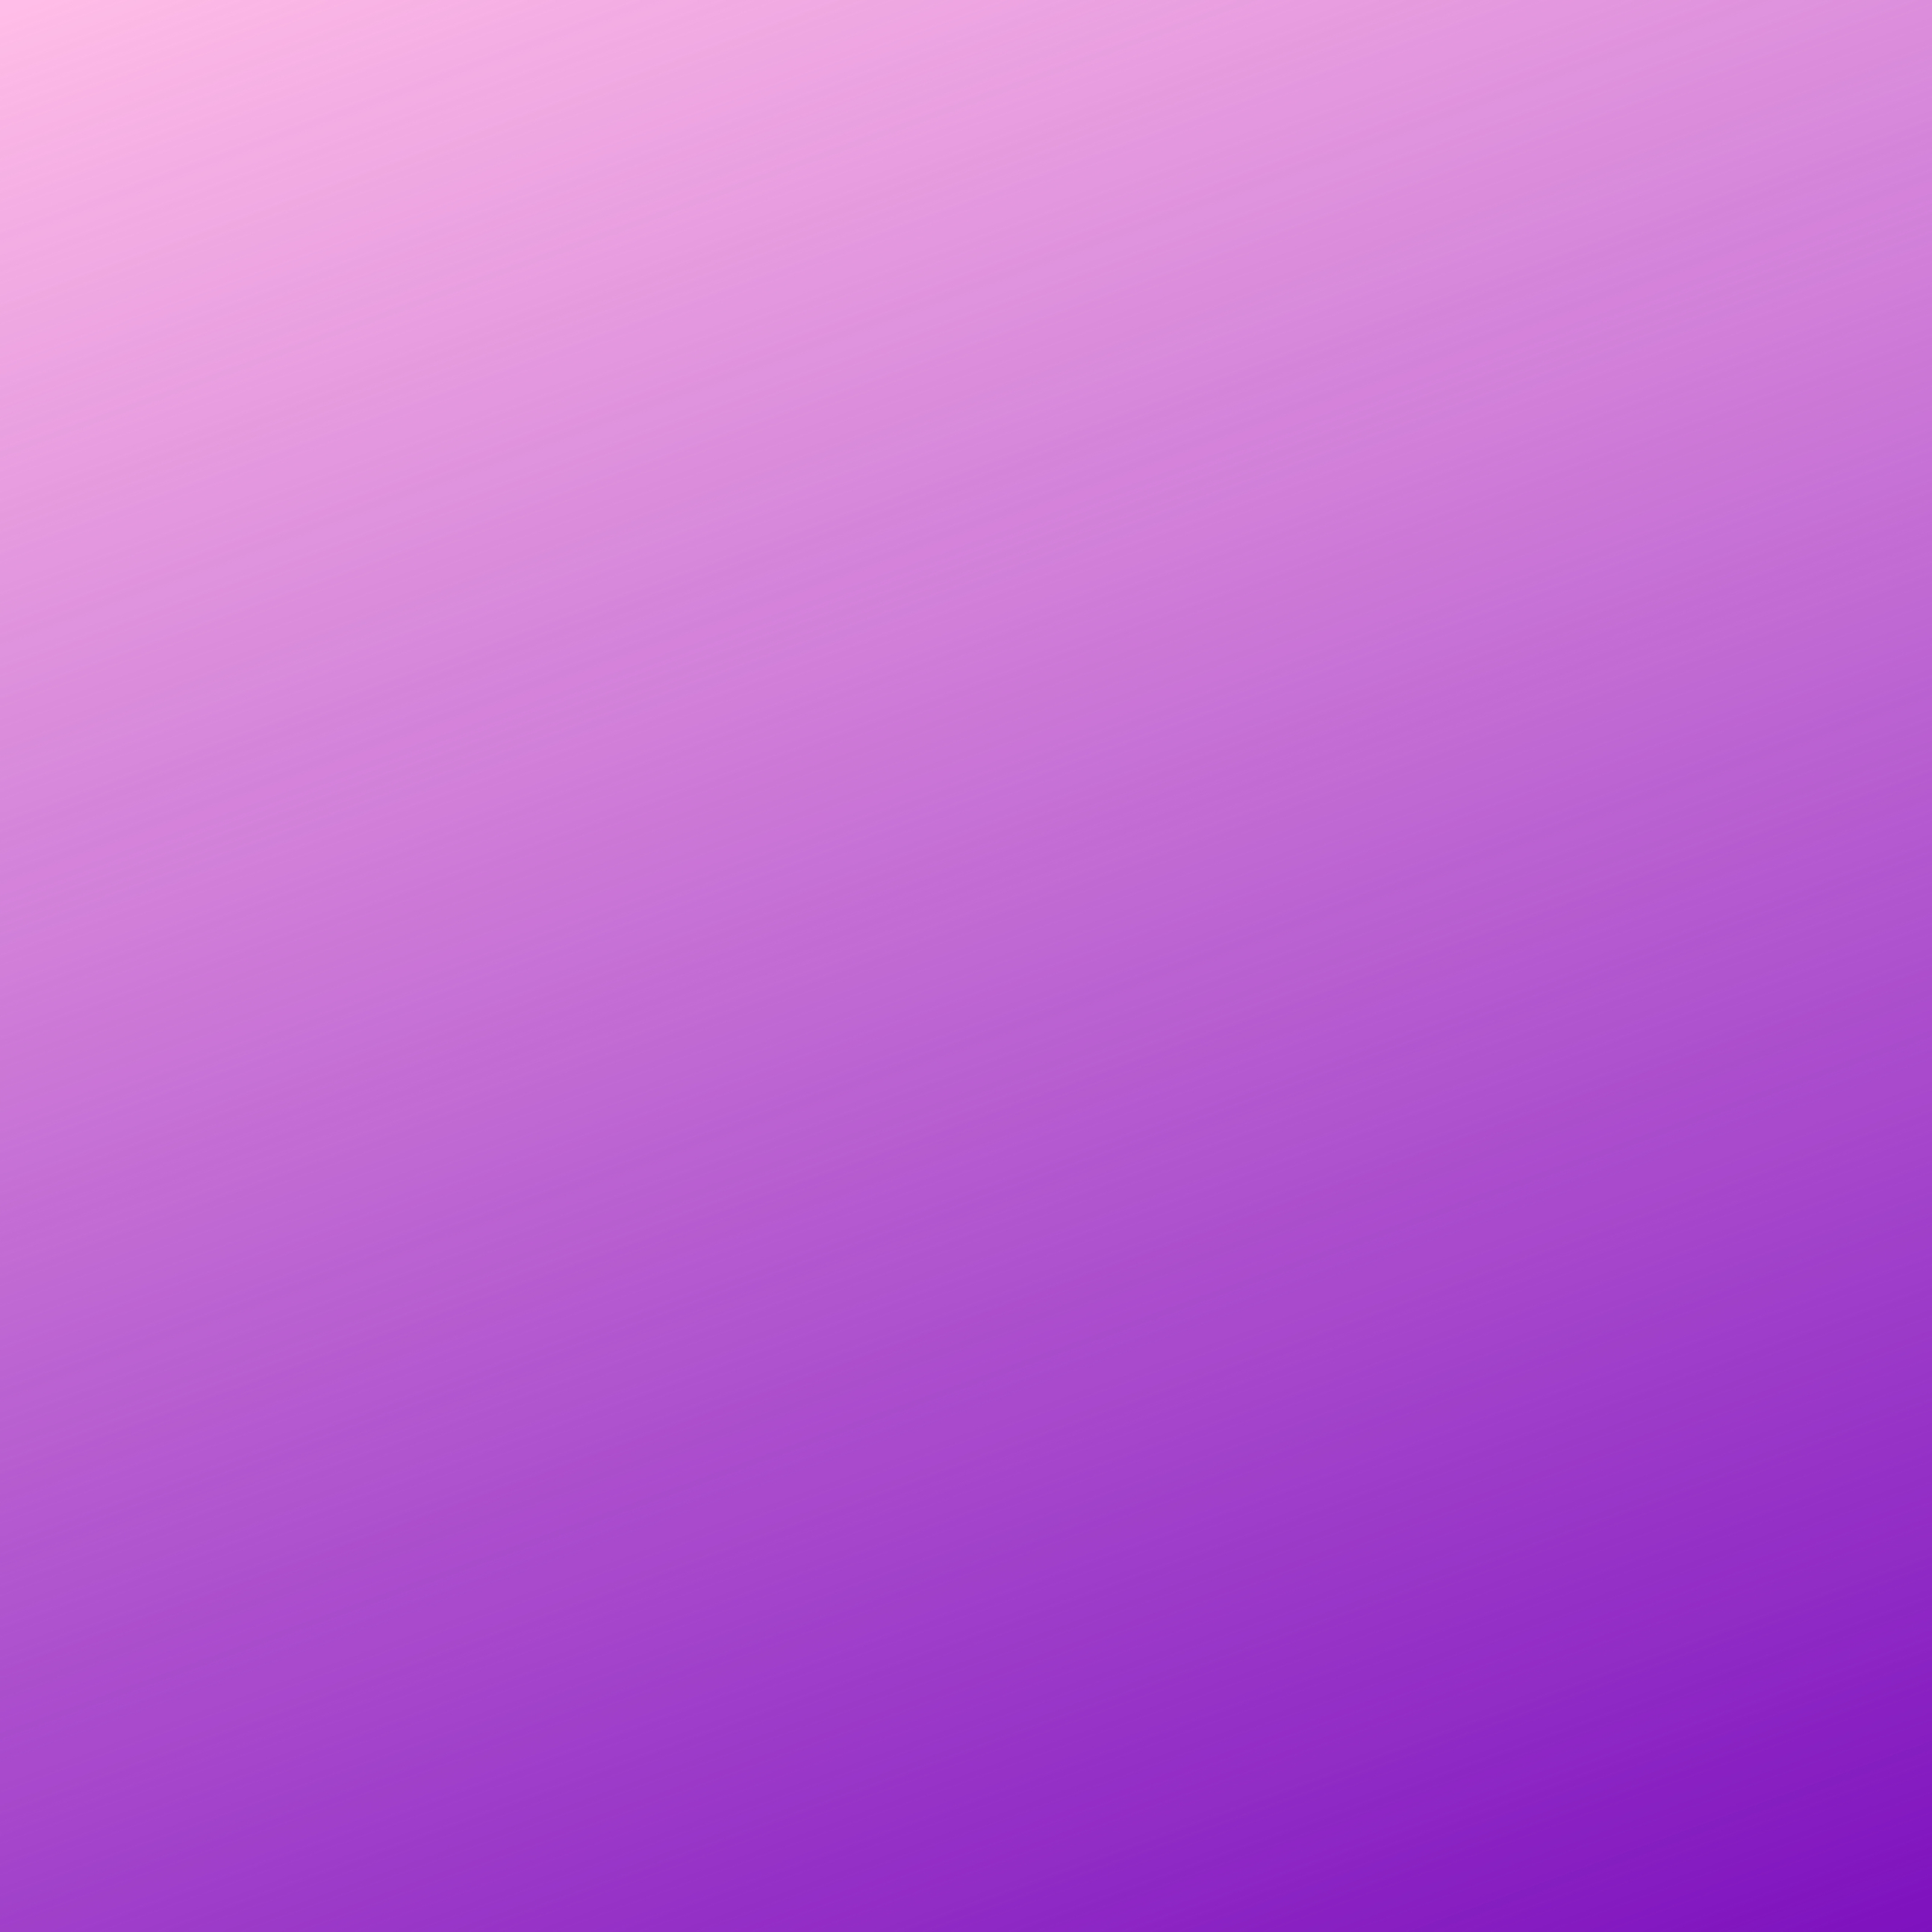 Purple Violet Background Gradient iPad Wallpaper